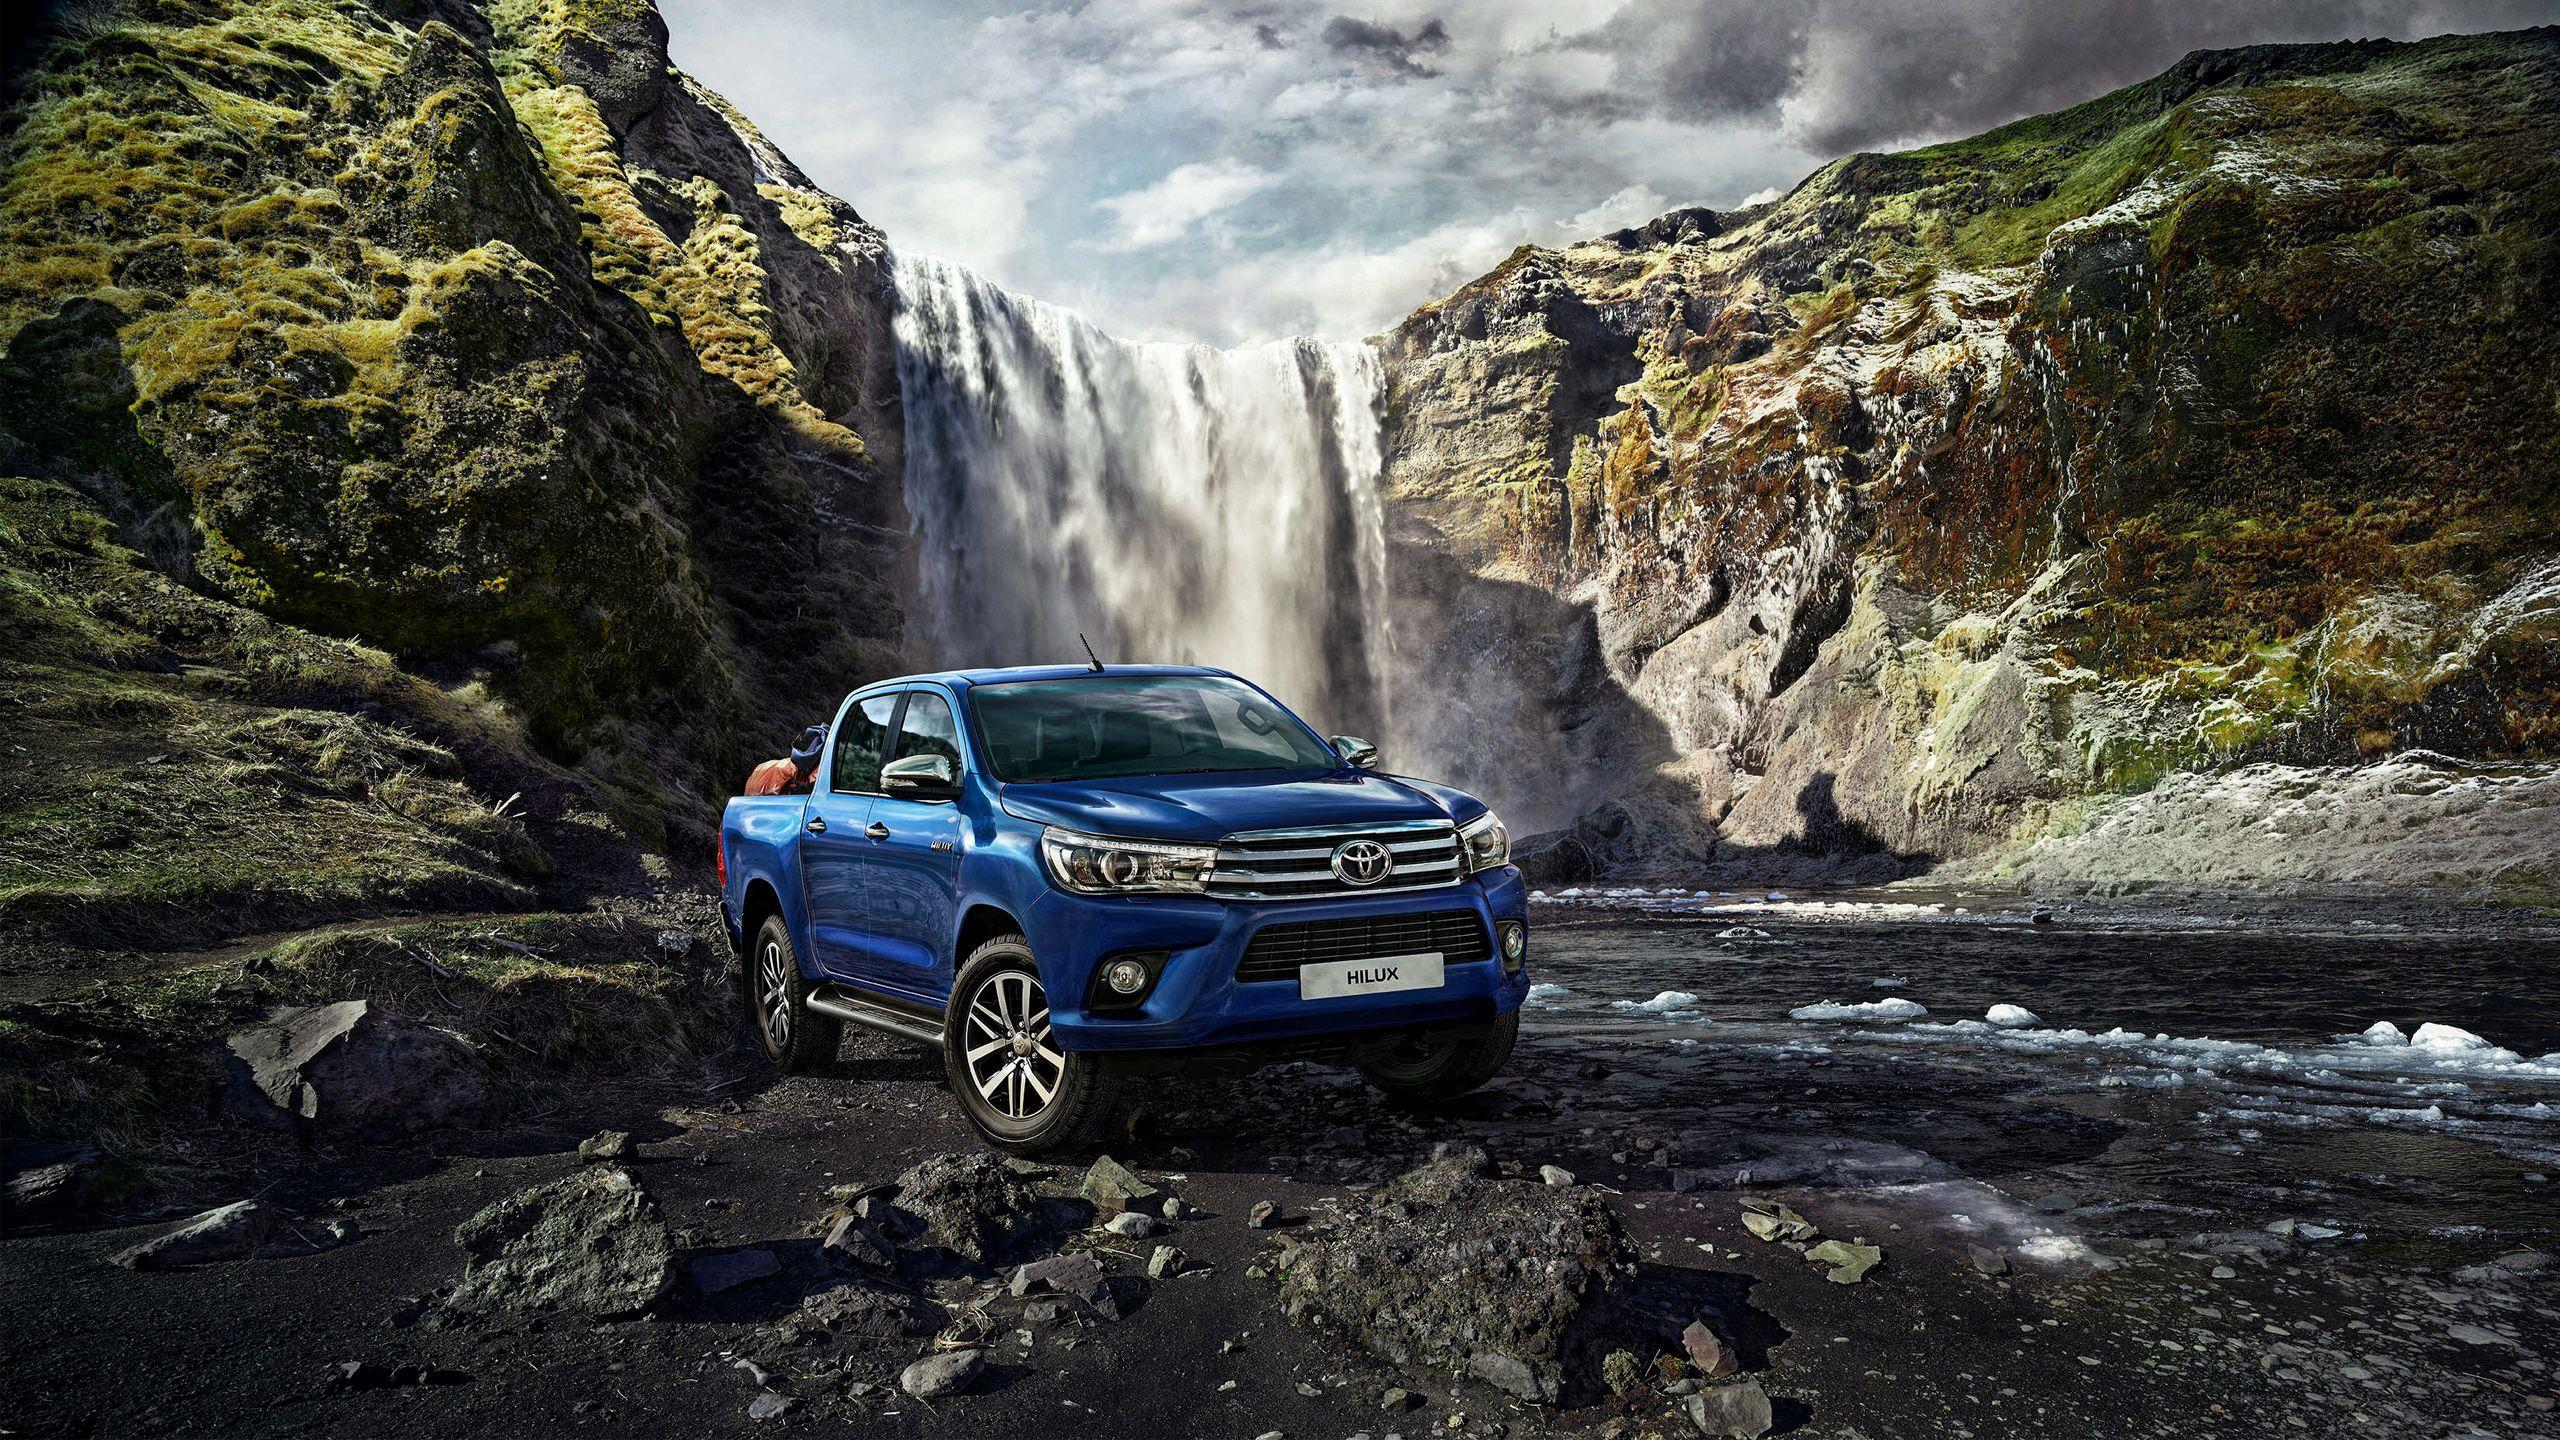 2015 Toyota Hilux Wallpapers